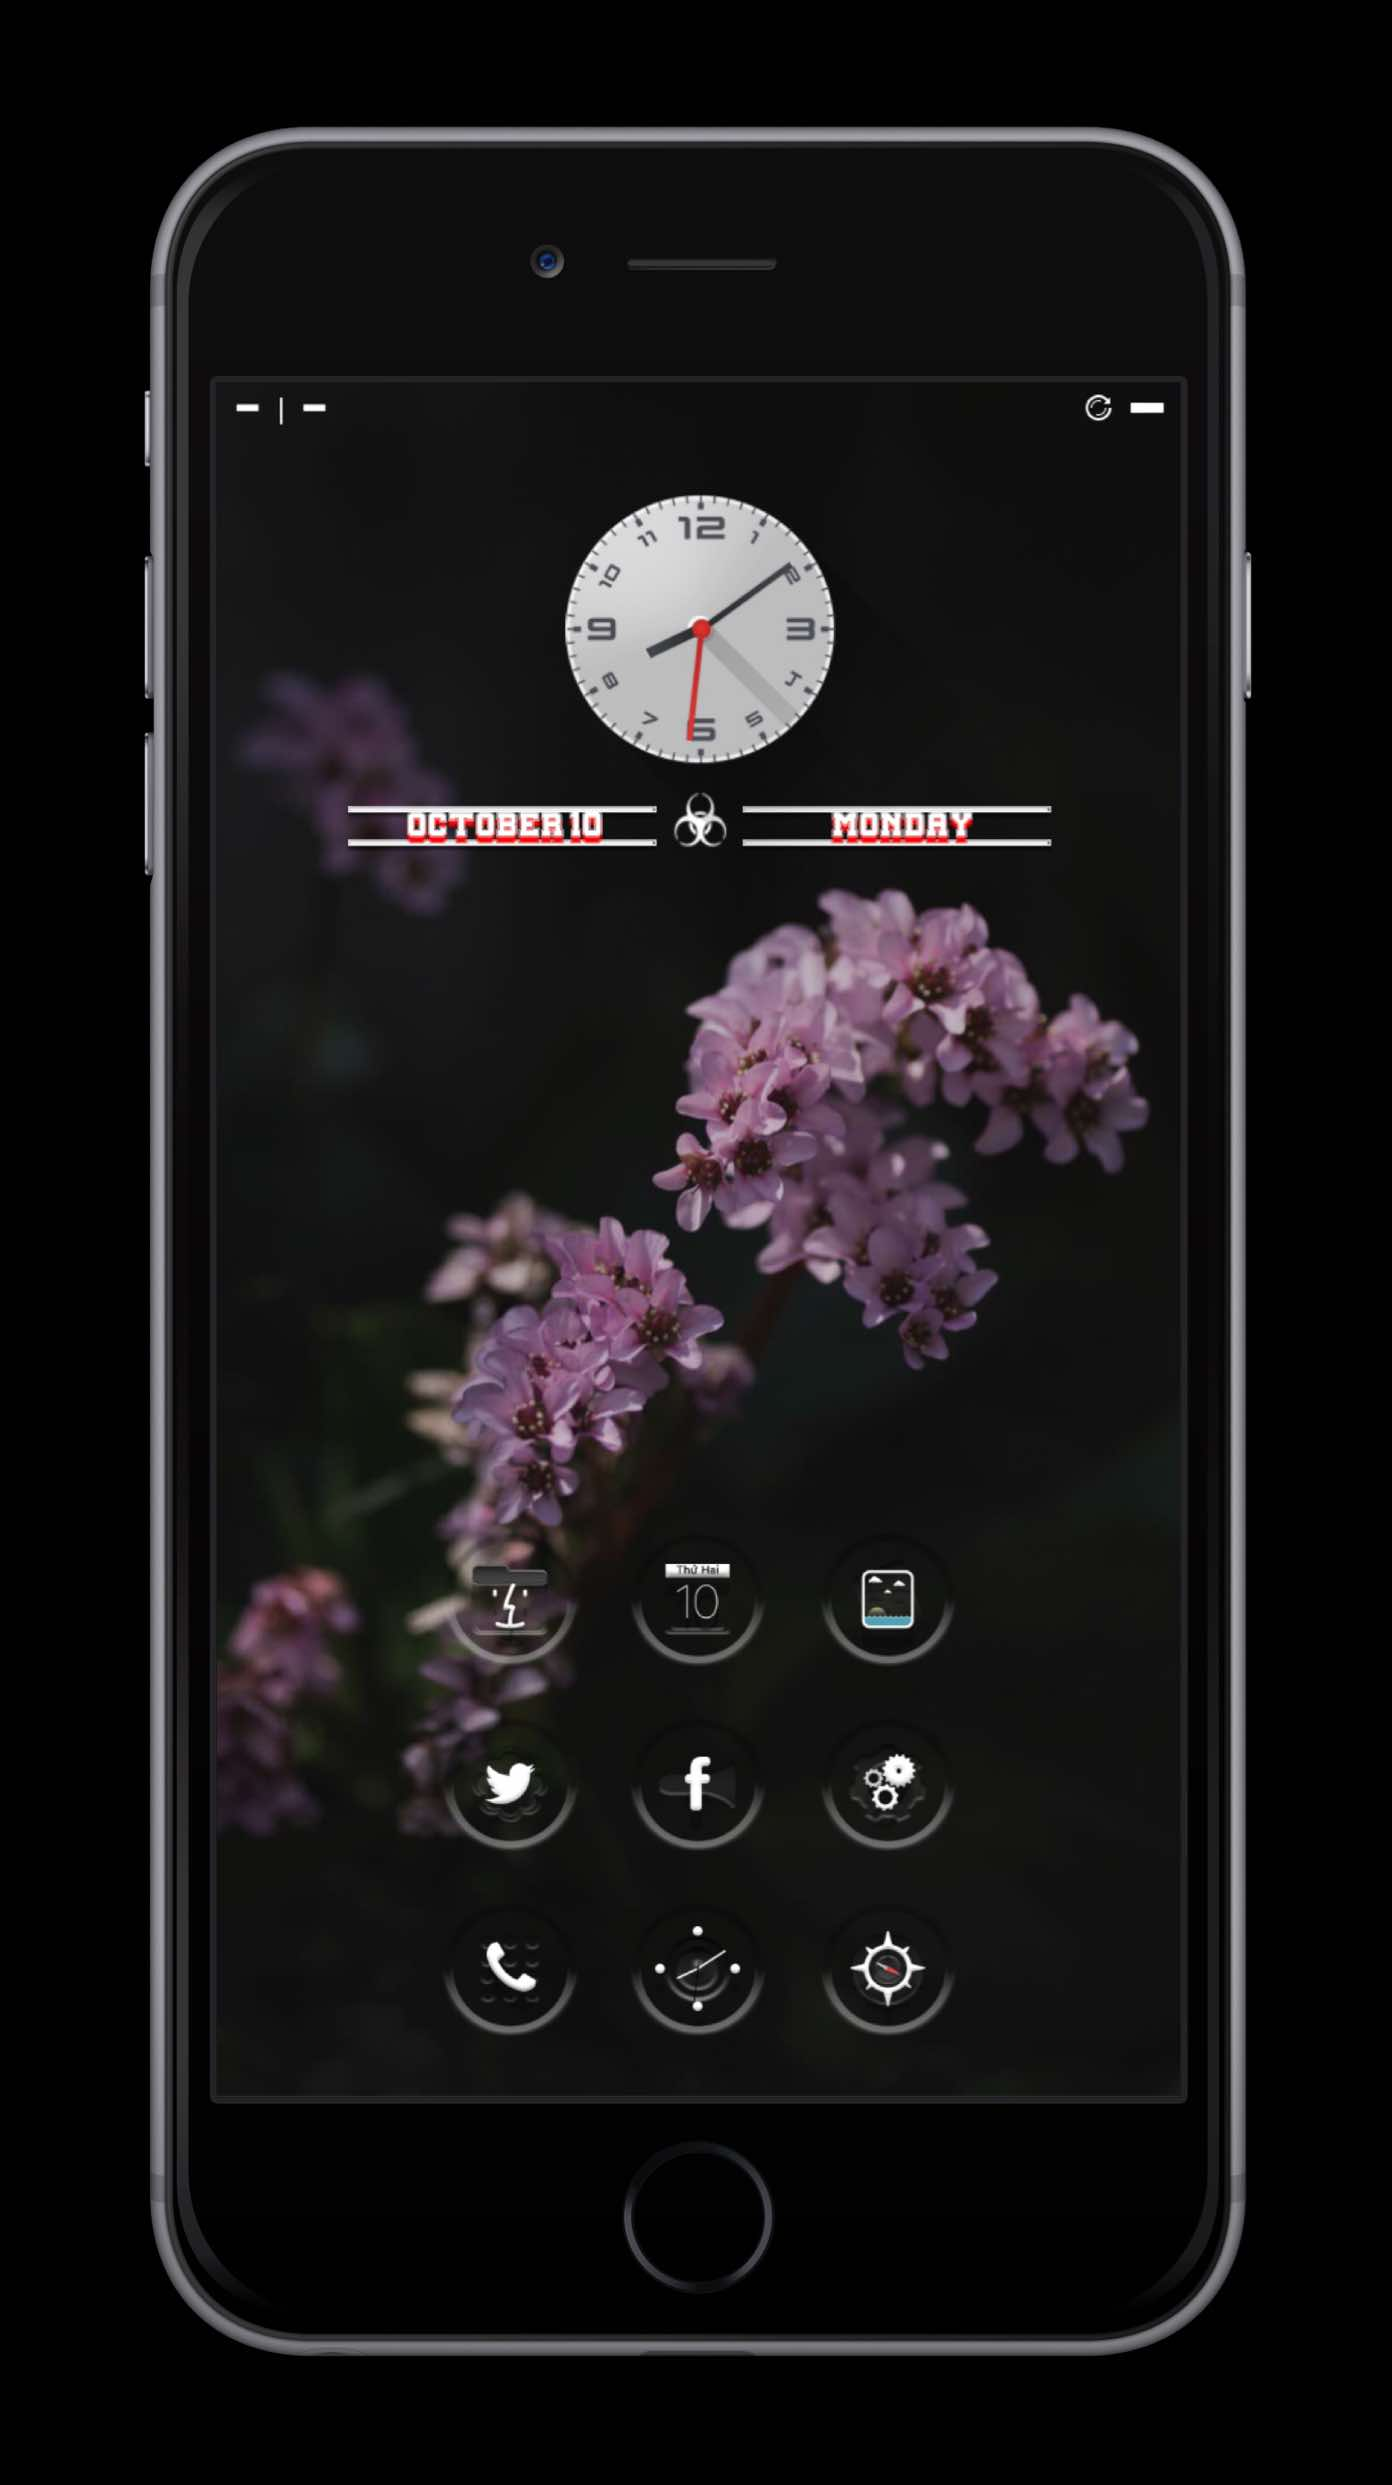 Share your LockScreen/Springboard Widgets - Page 164